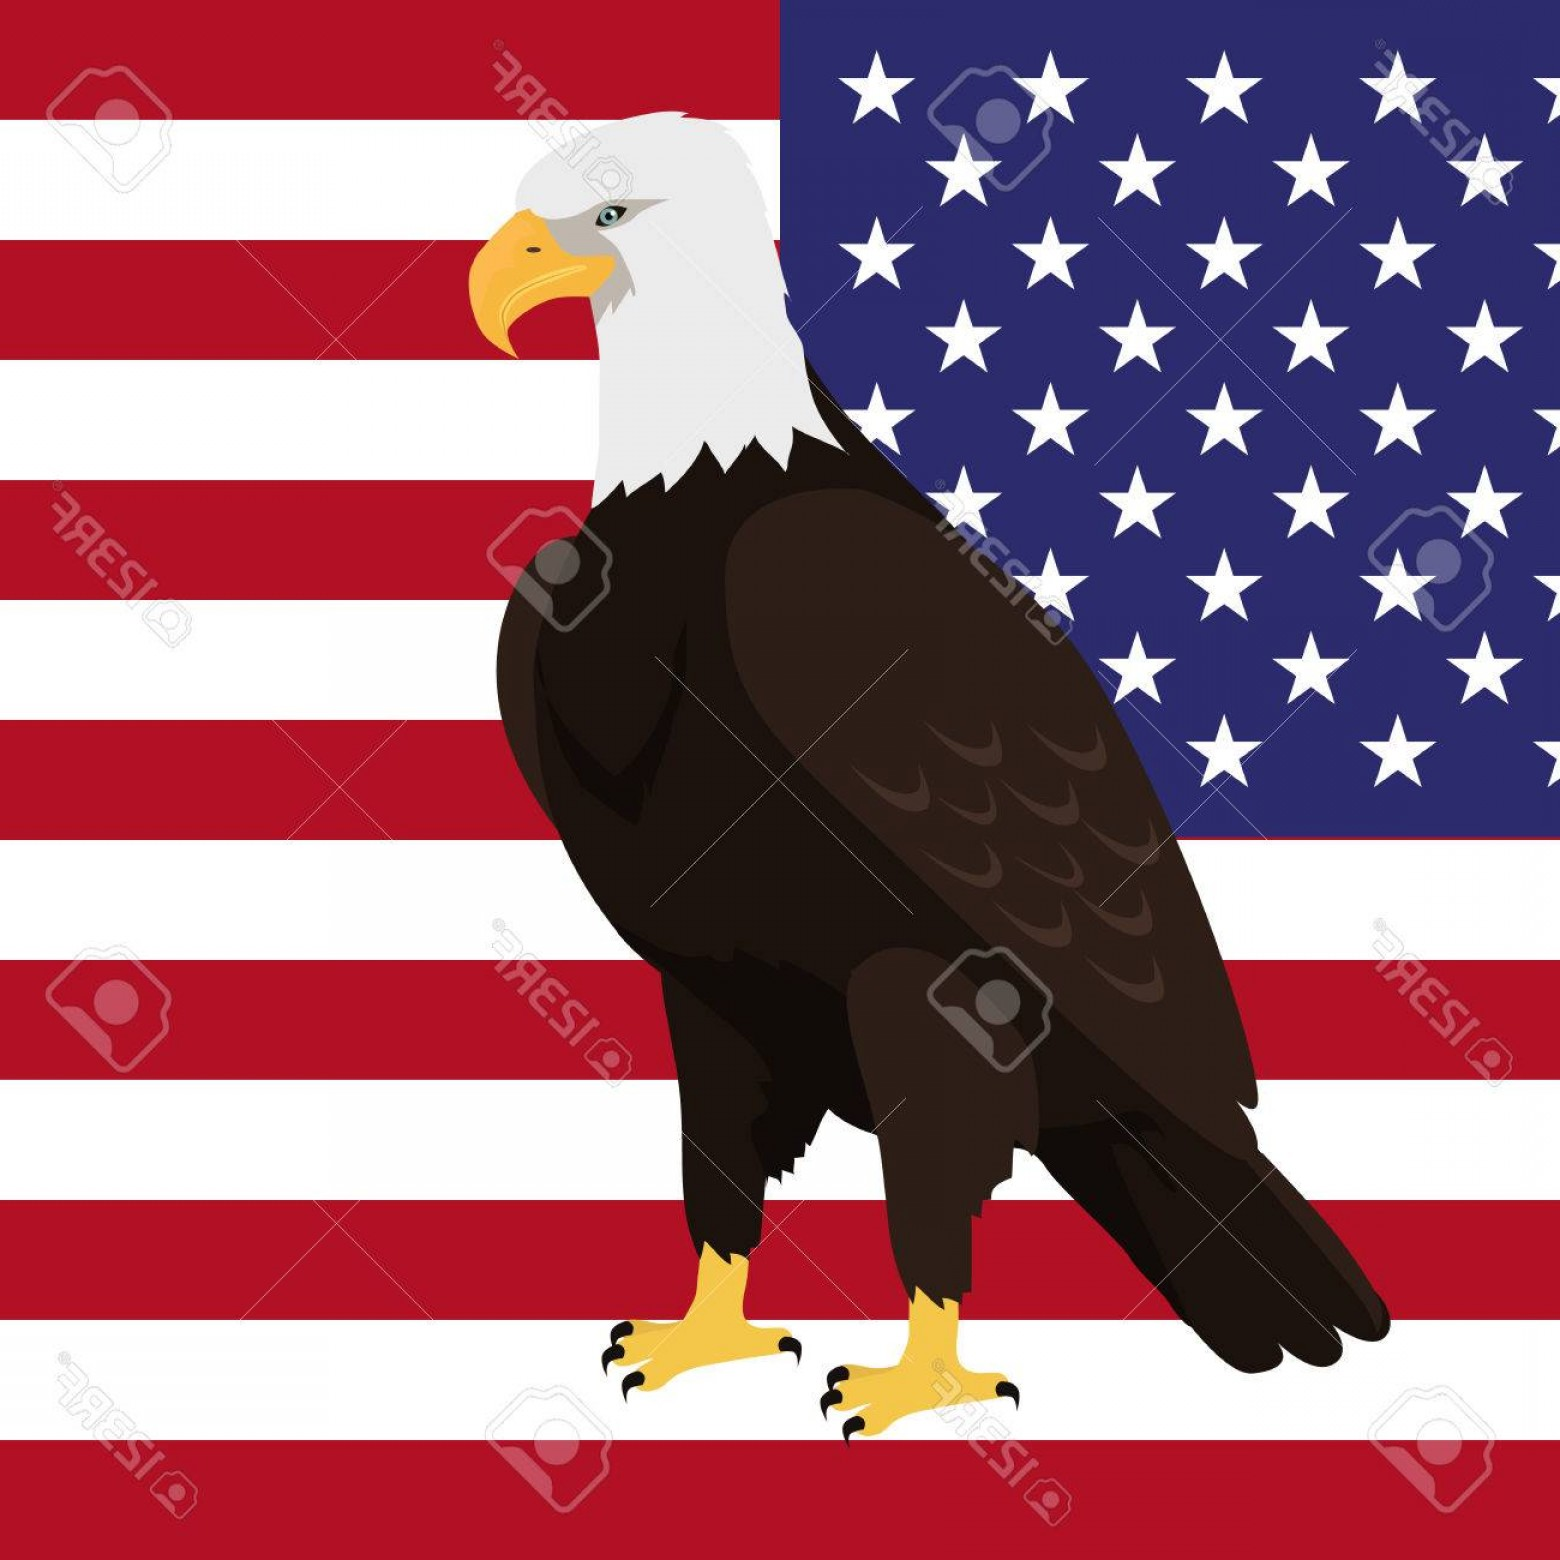 Patriotic Bald Eagle Vector: Photostock Vector Bald Eagle Vector Usa National Bird Symbol And Flag For Patriotic National Symbolic Patriotic Poster